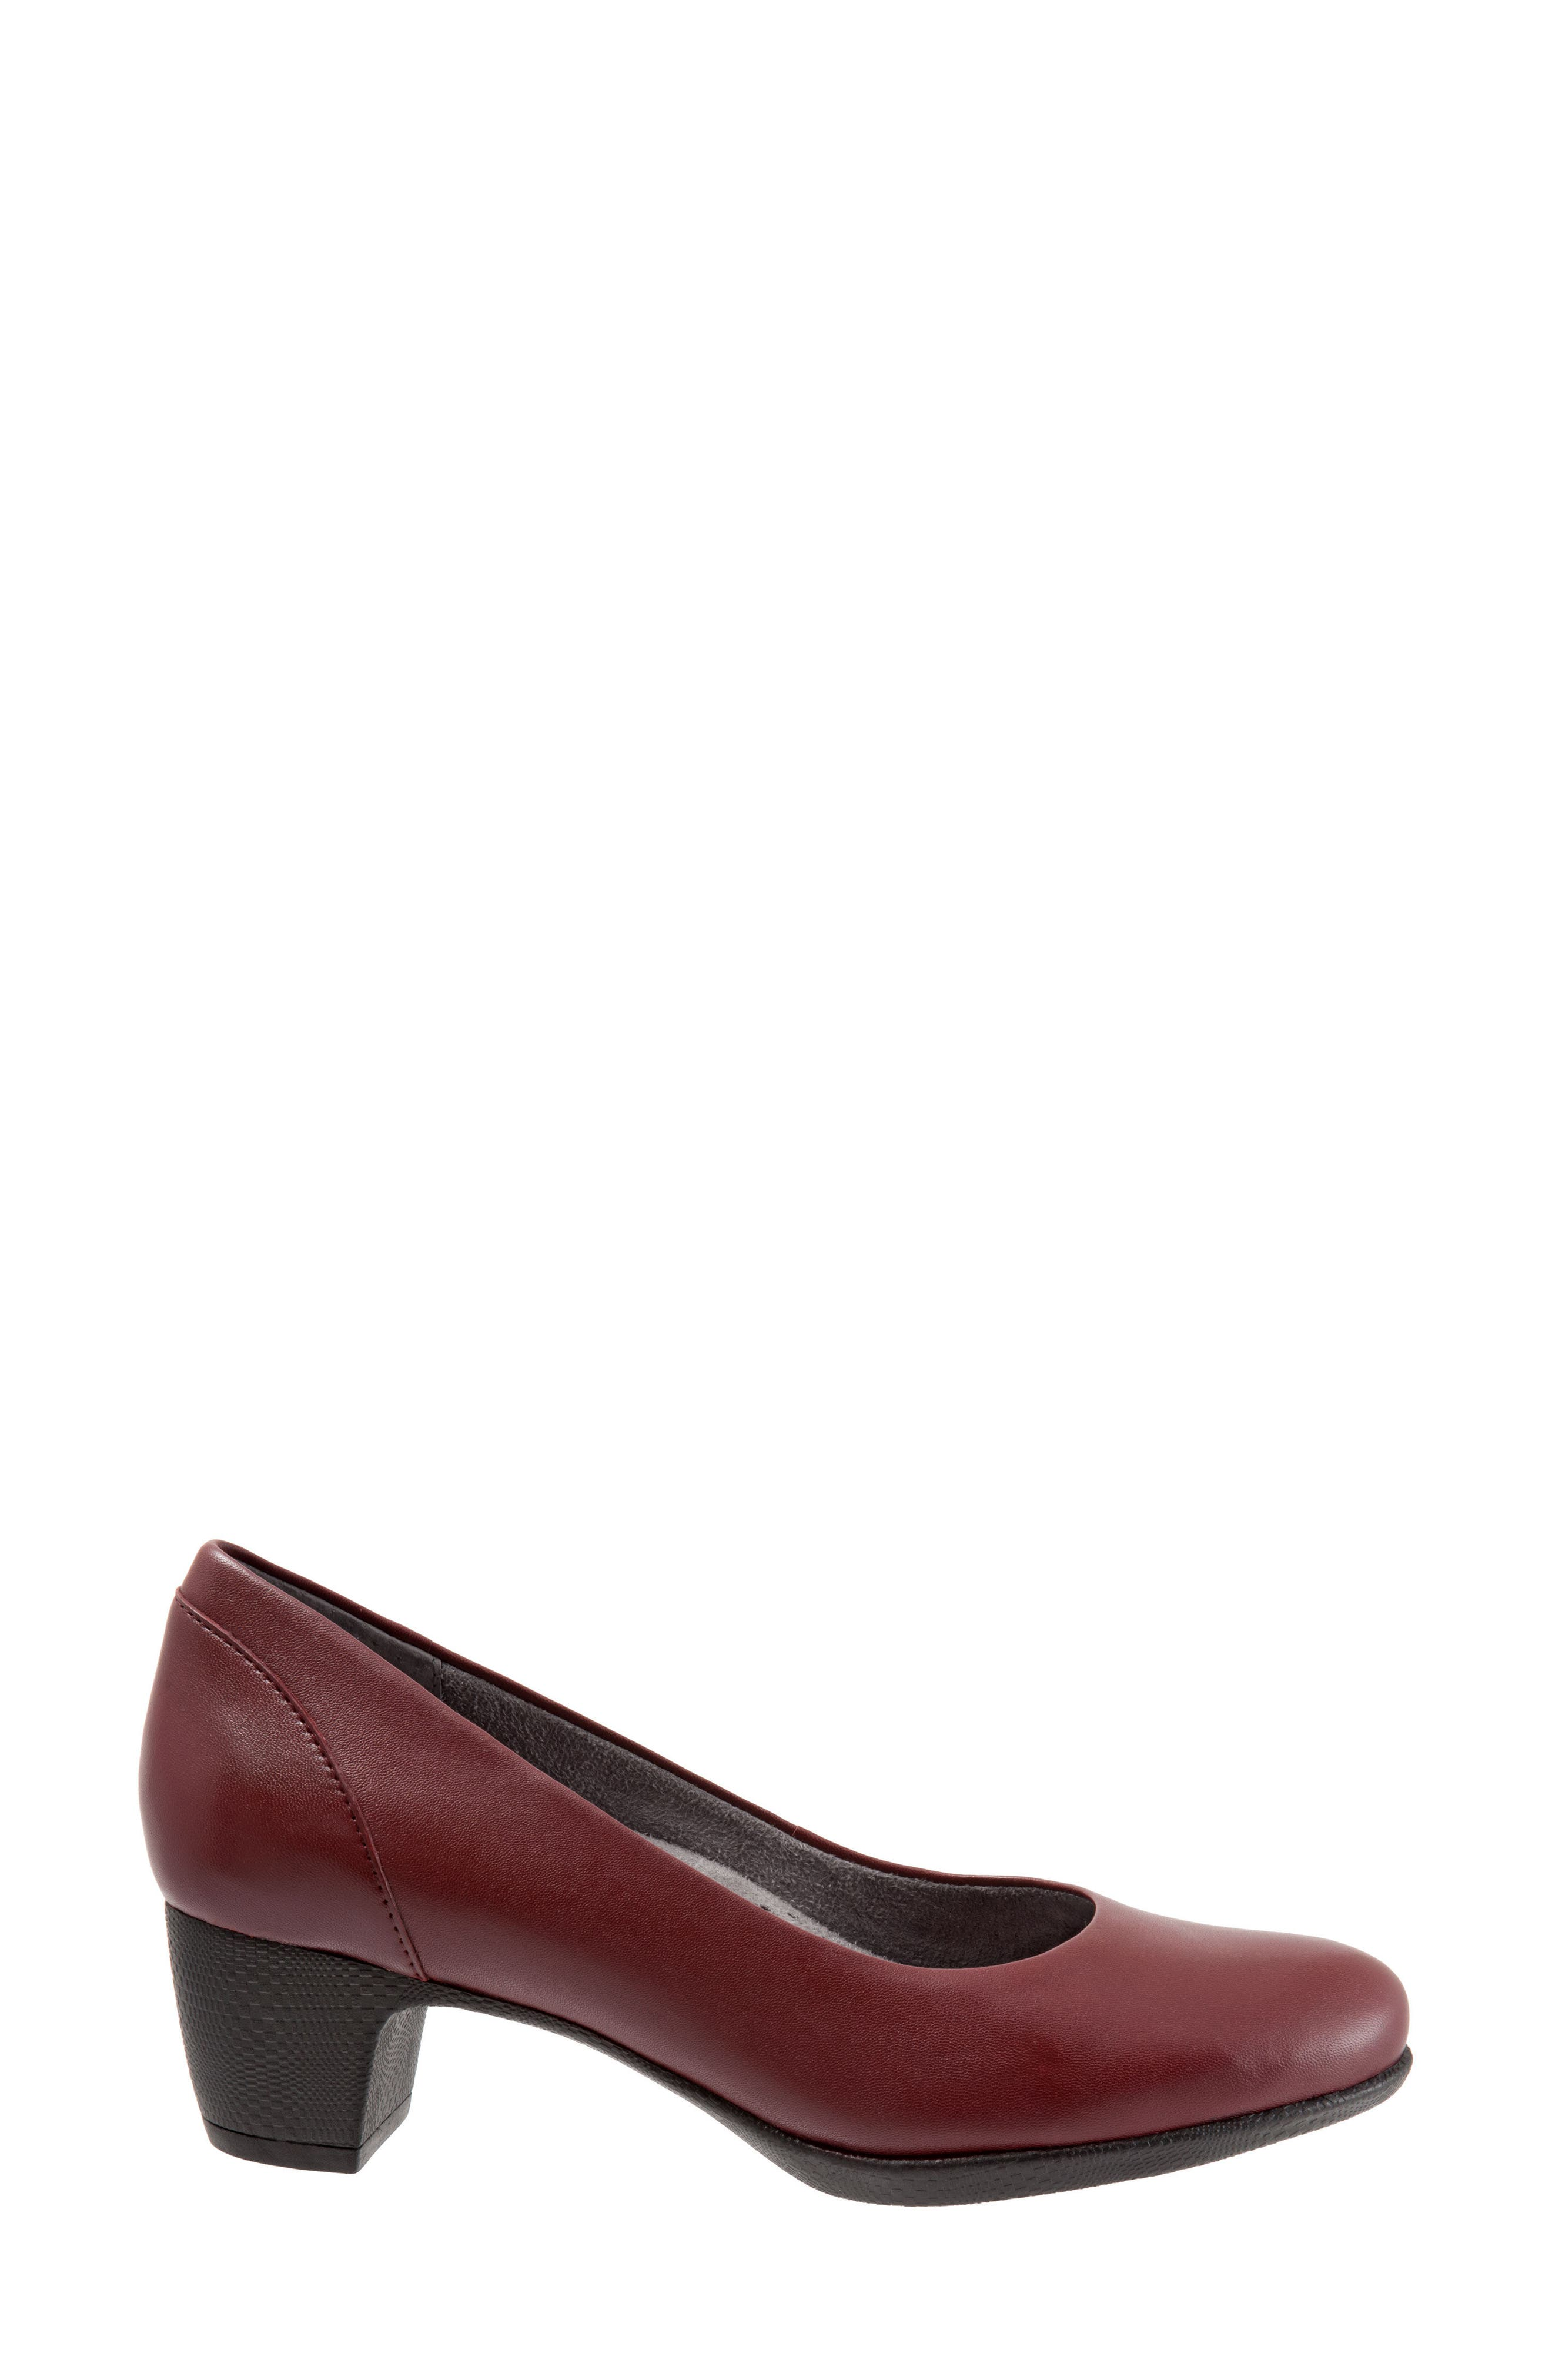 Imperial II Pump,                             Alternate thumbnail 4, color,                             Dark Red Leather